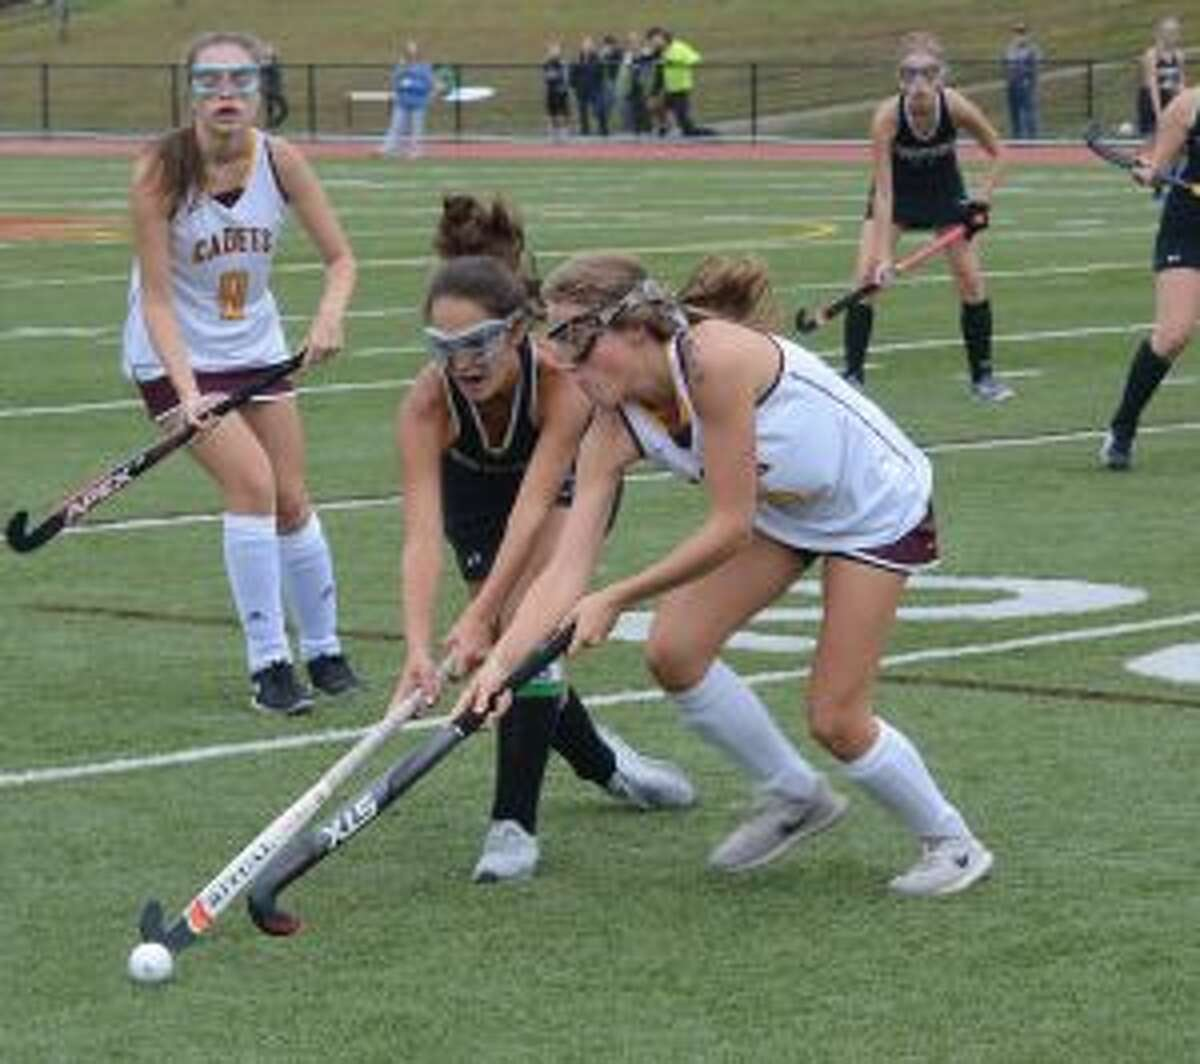 Trumbull's Olivia Giovannini and St. Joseph's Lily Norris compete for possession. - Andy Hutchison photos